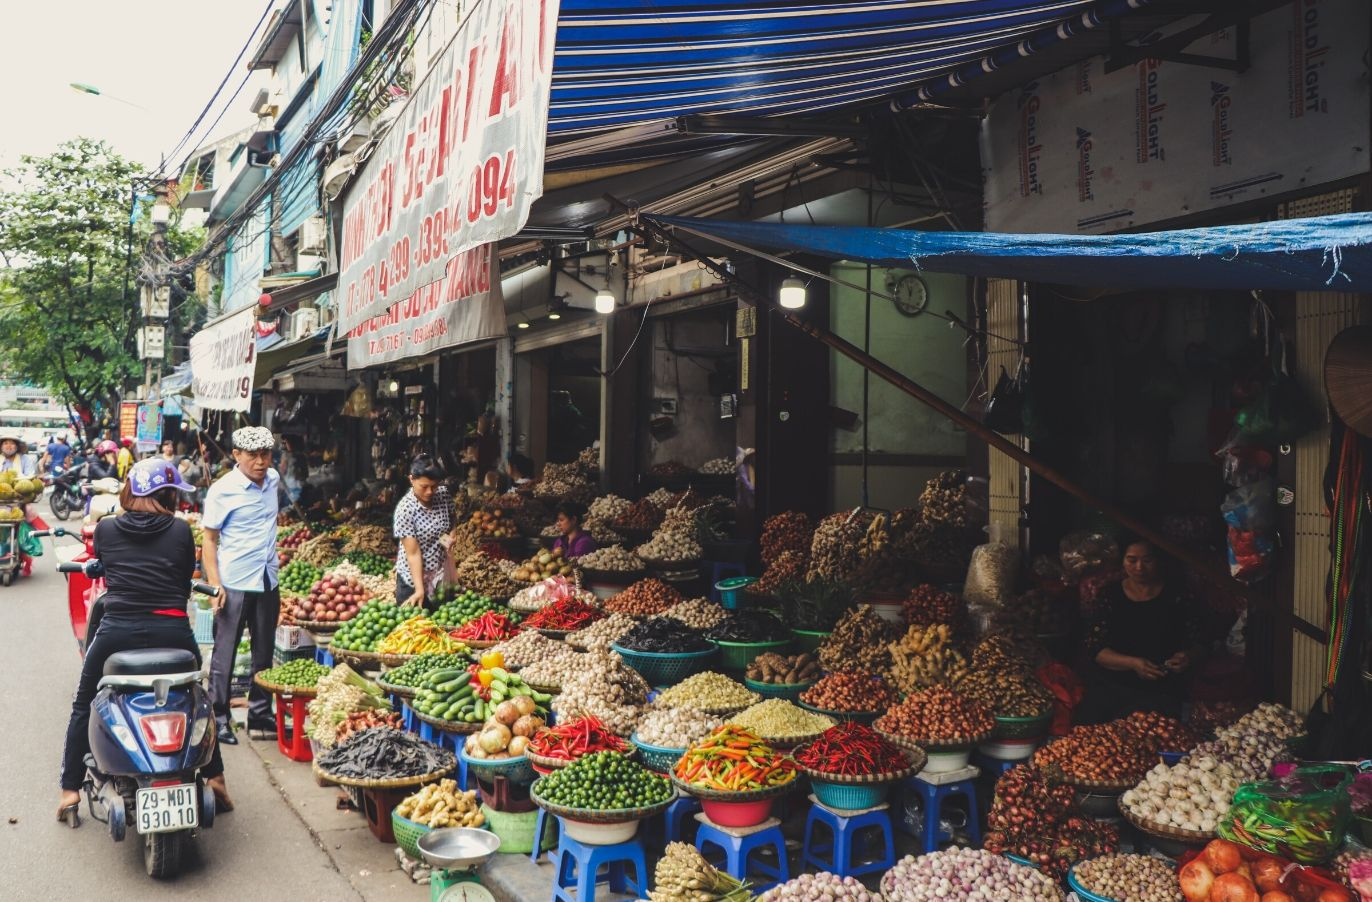 foreign market stall with trays of fruits and vegetables